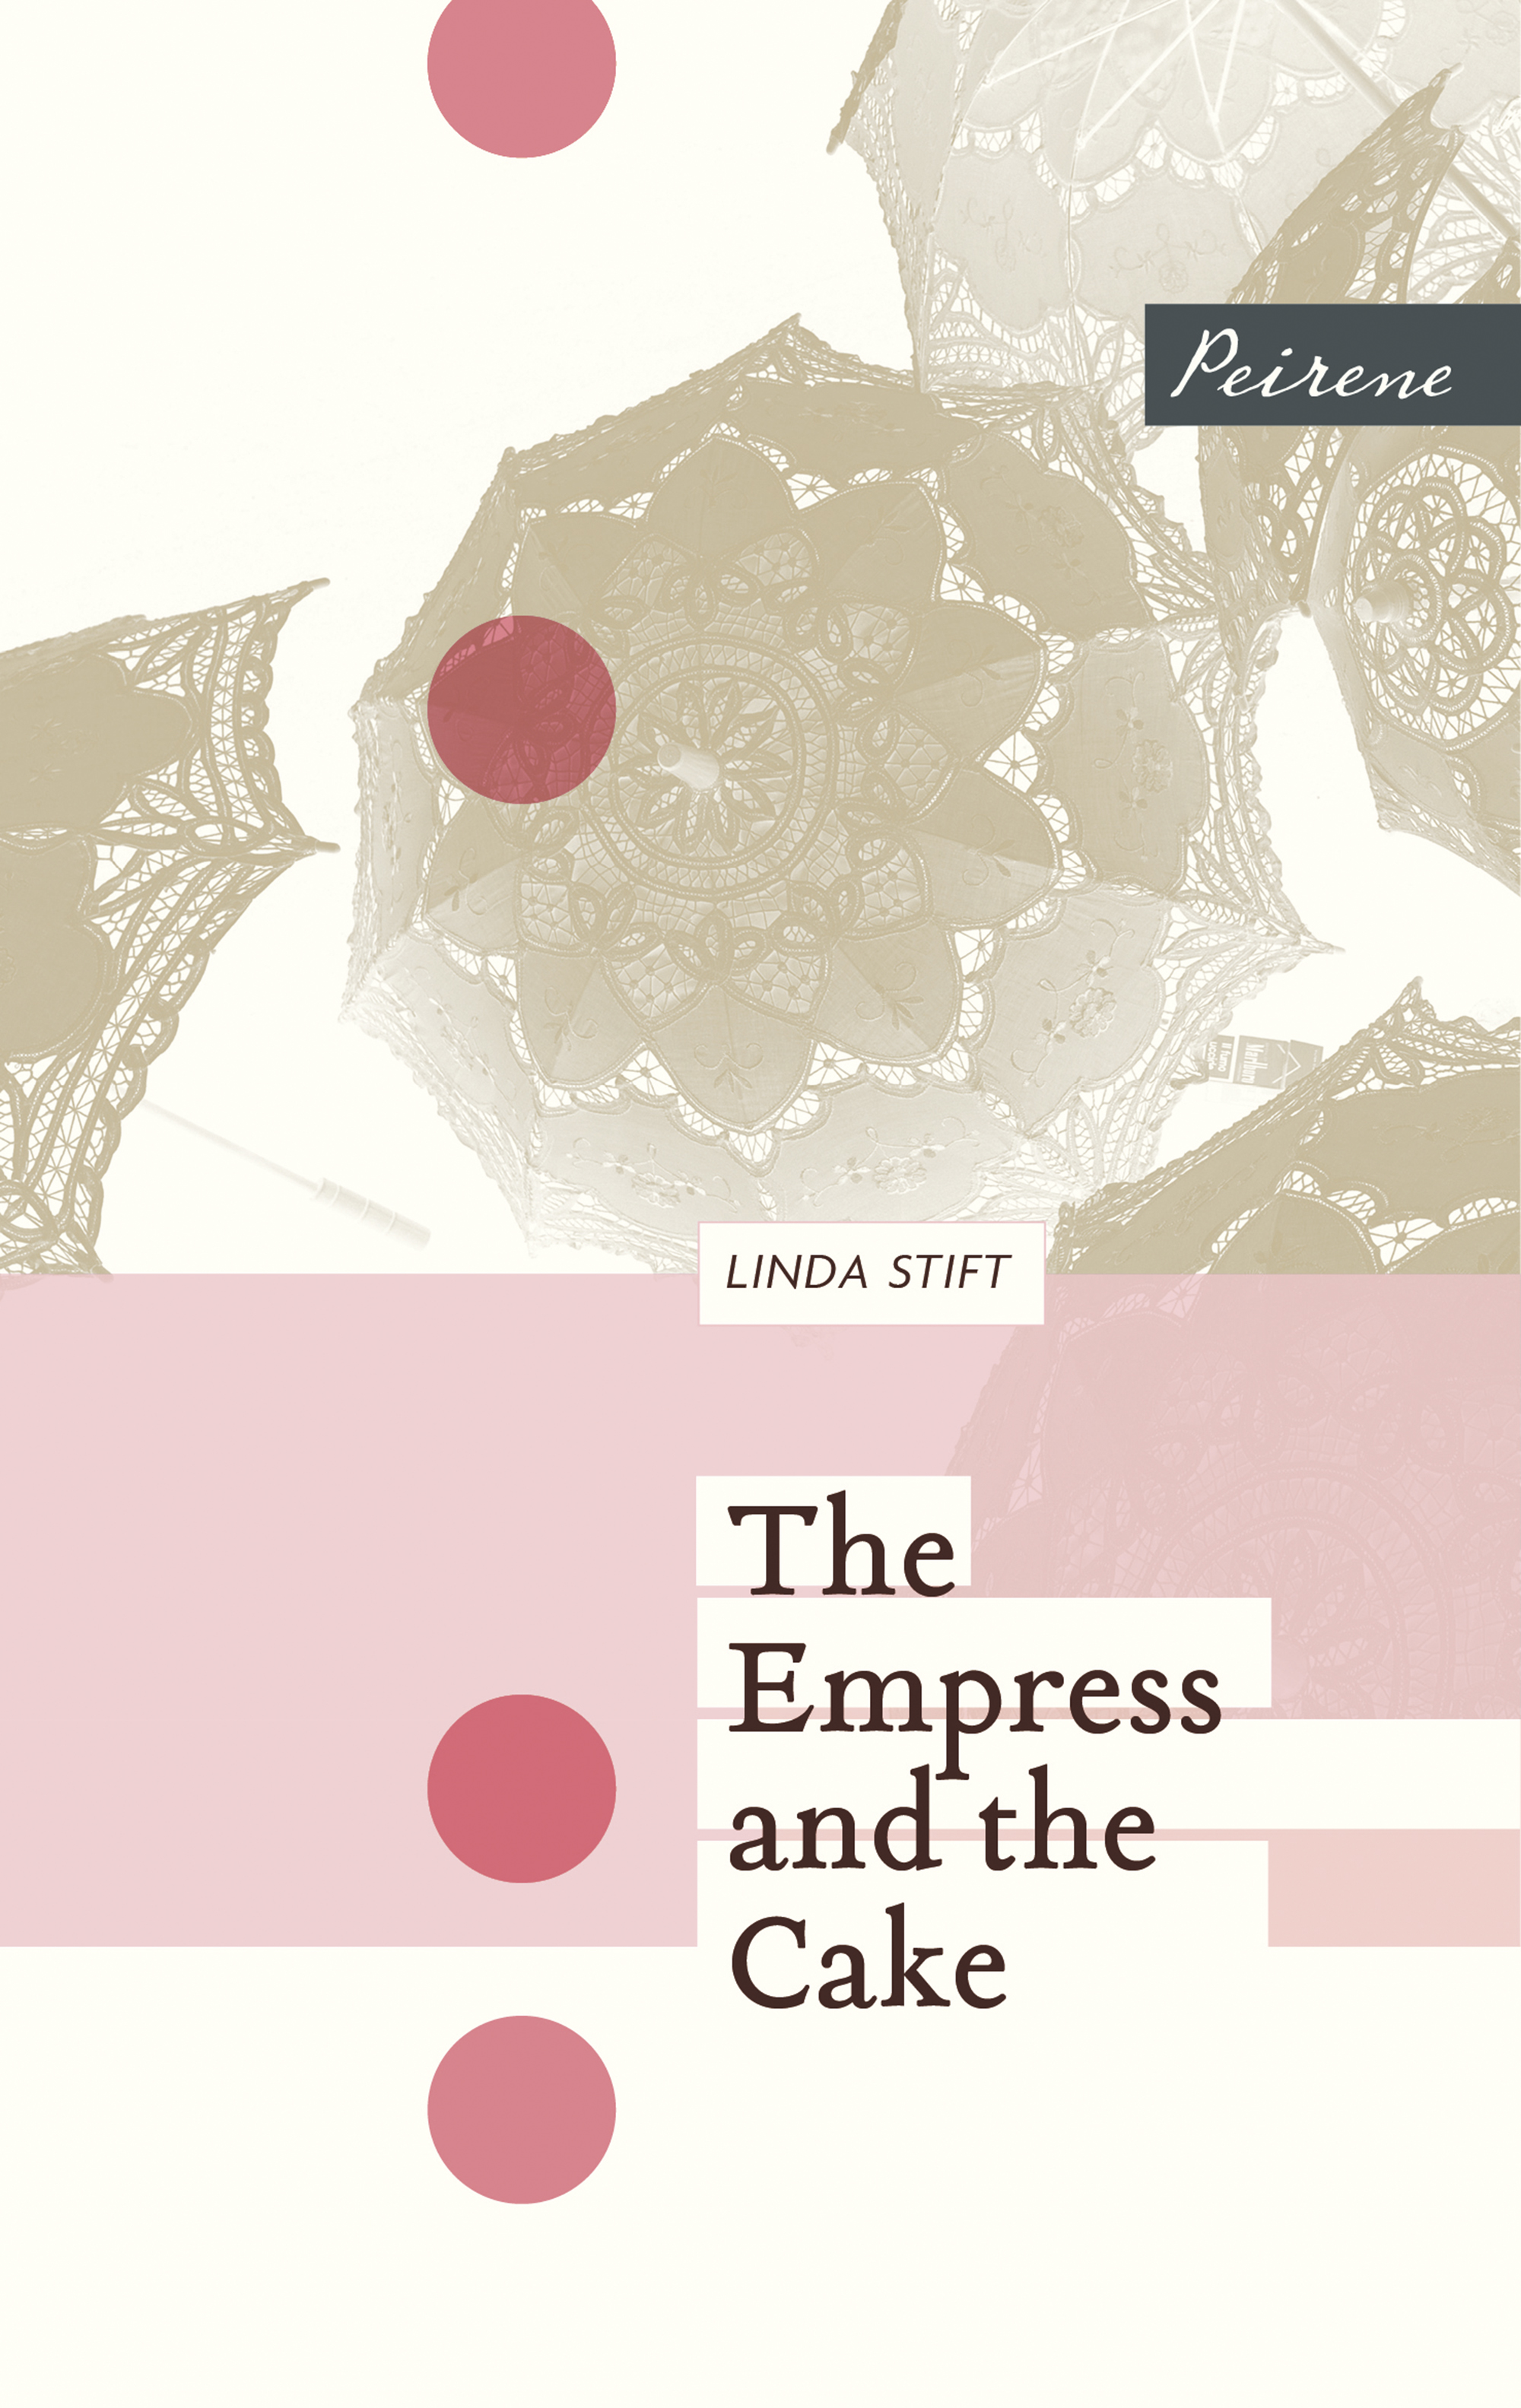 The Empress and the Cake